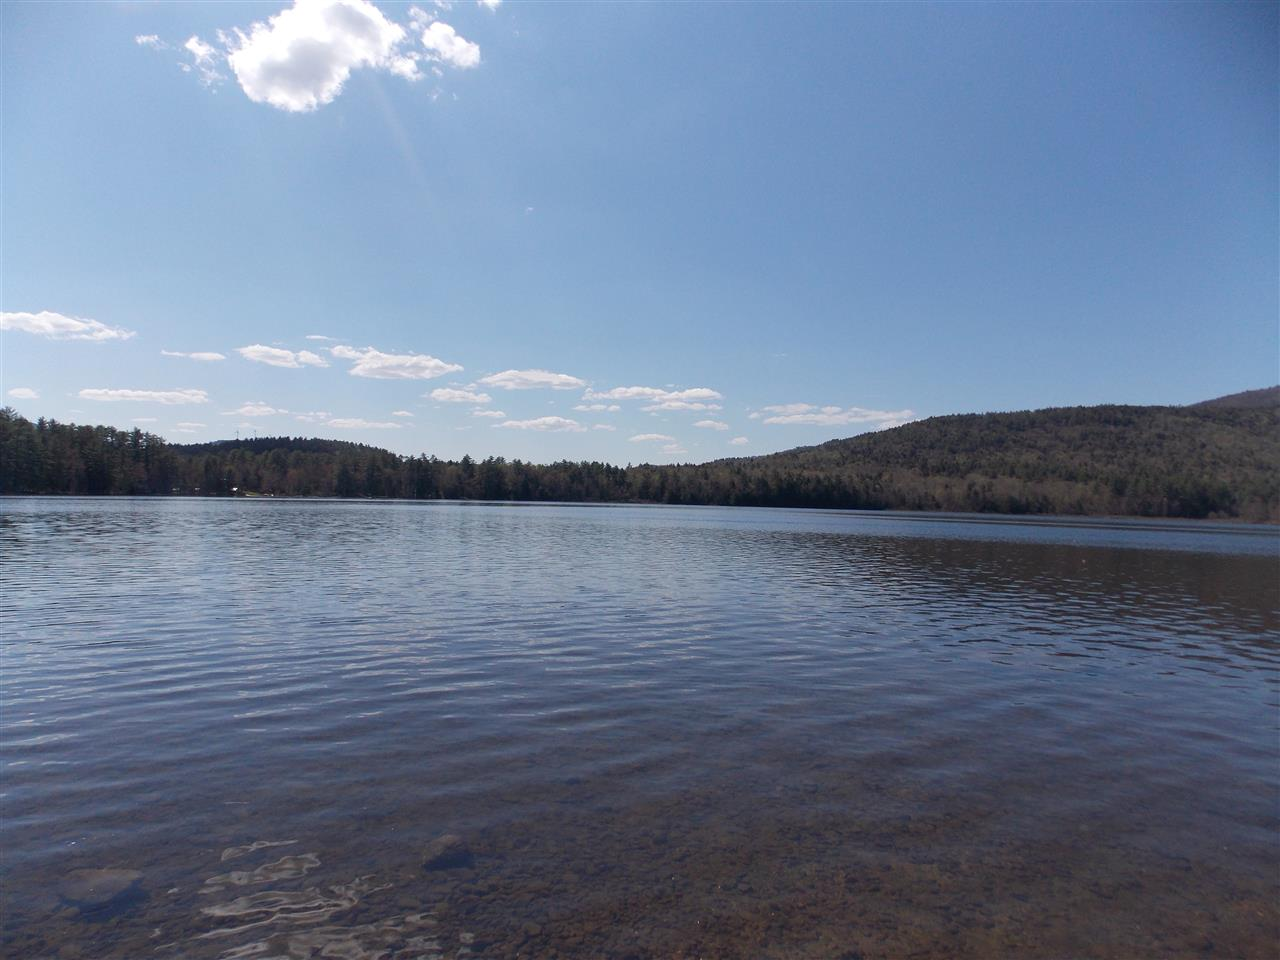 MLS 4691562: 230 Loon Lake, Plymouth NH